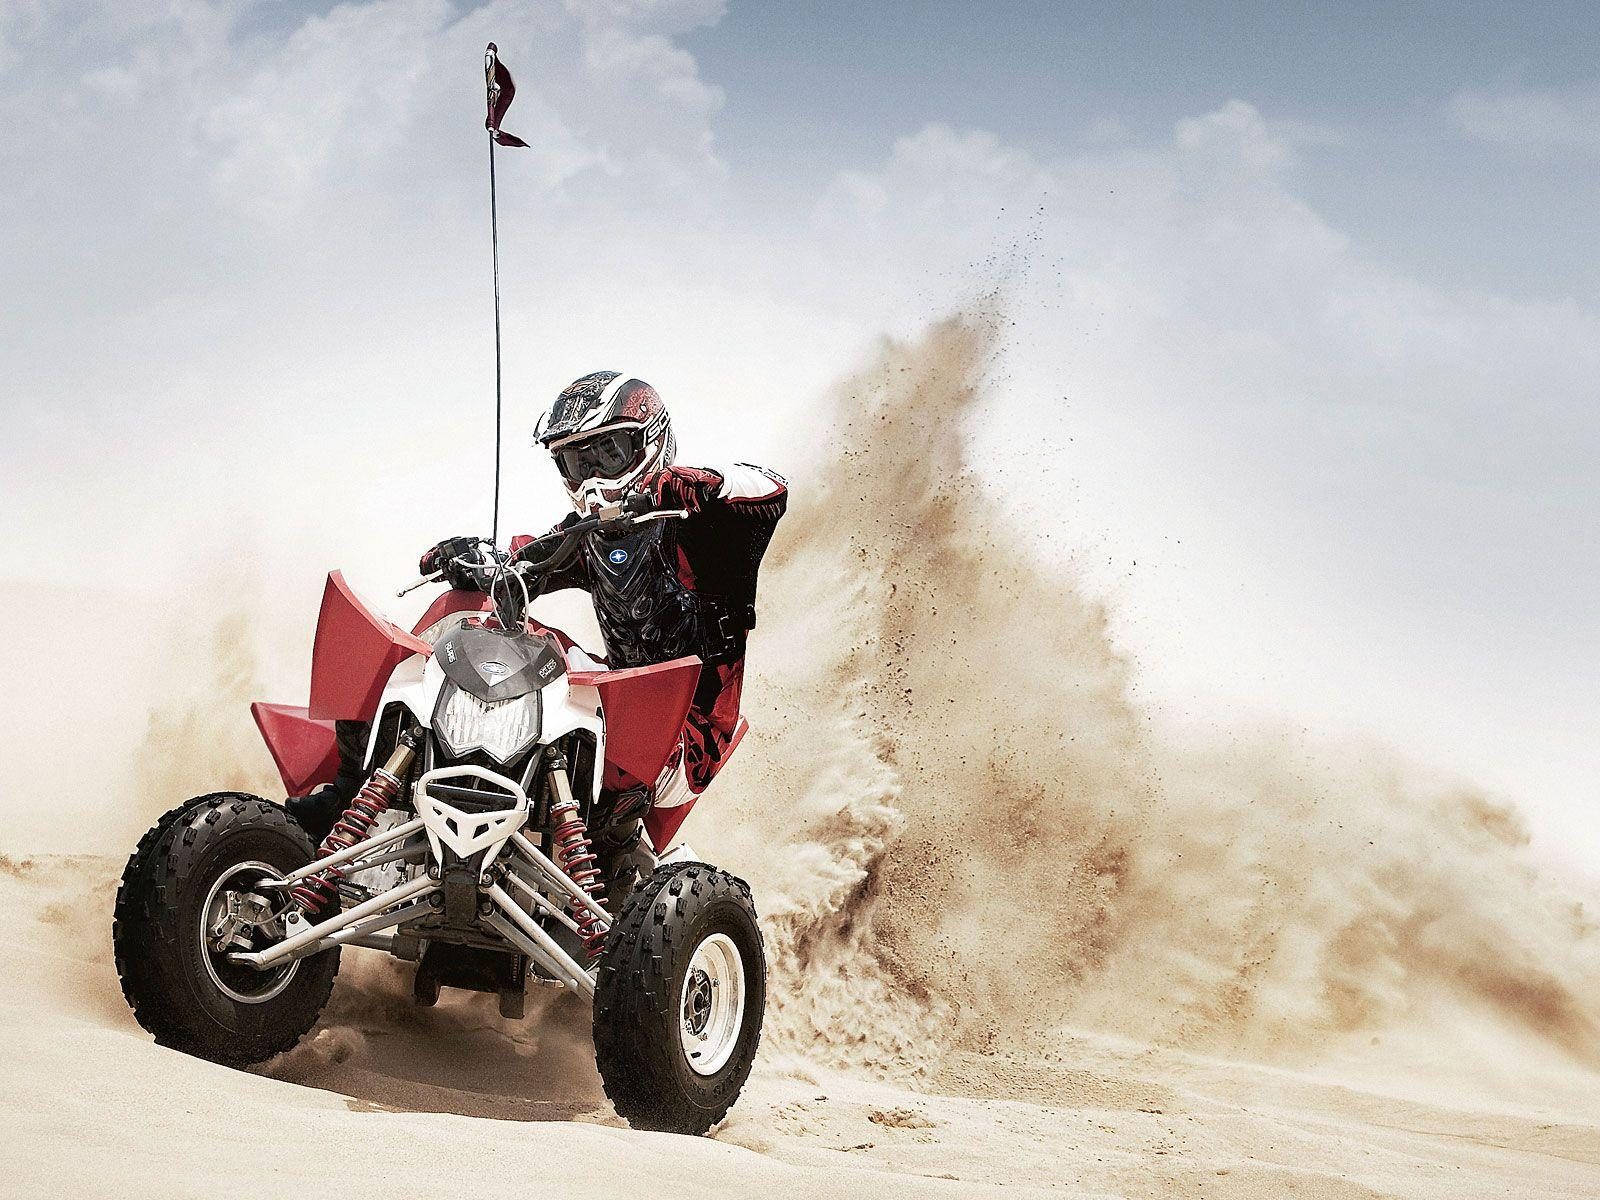 Atv Wallpapers, Interesting Atv HDQ Image Collection, High